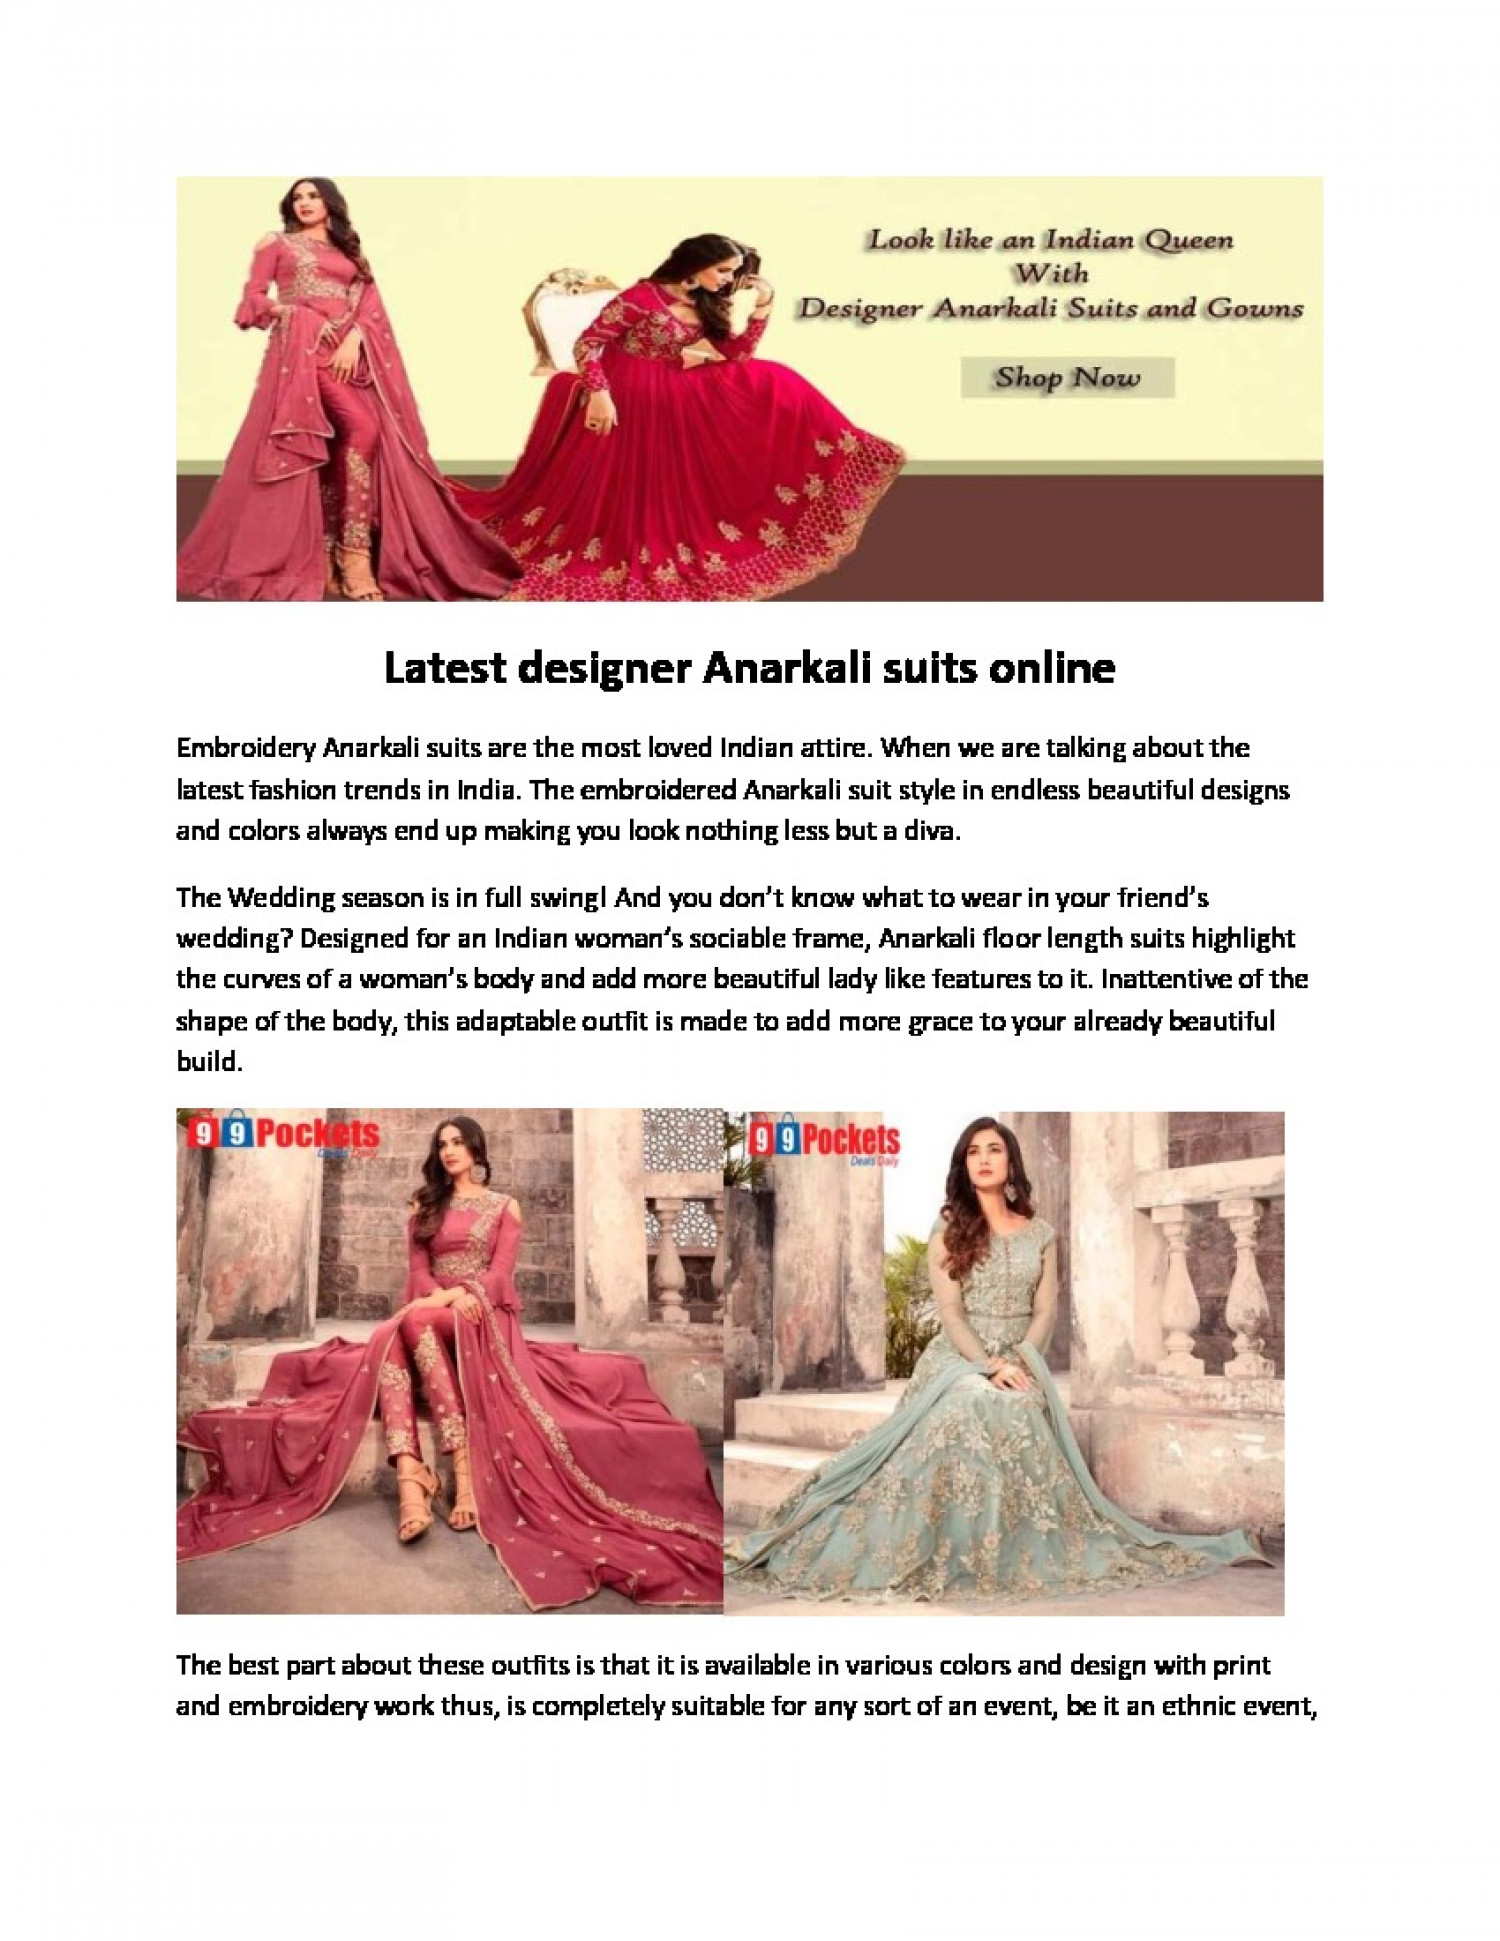 Latest designer Anarkali suits online Infographic